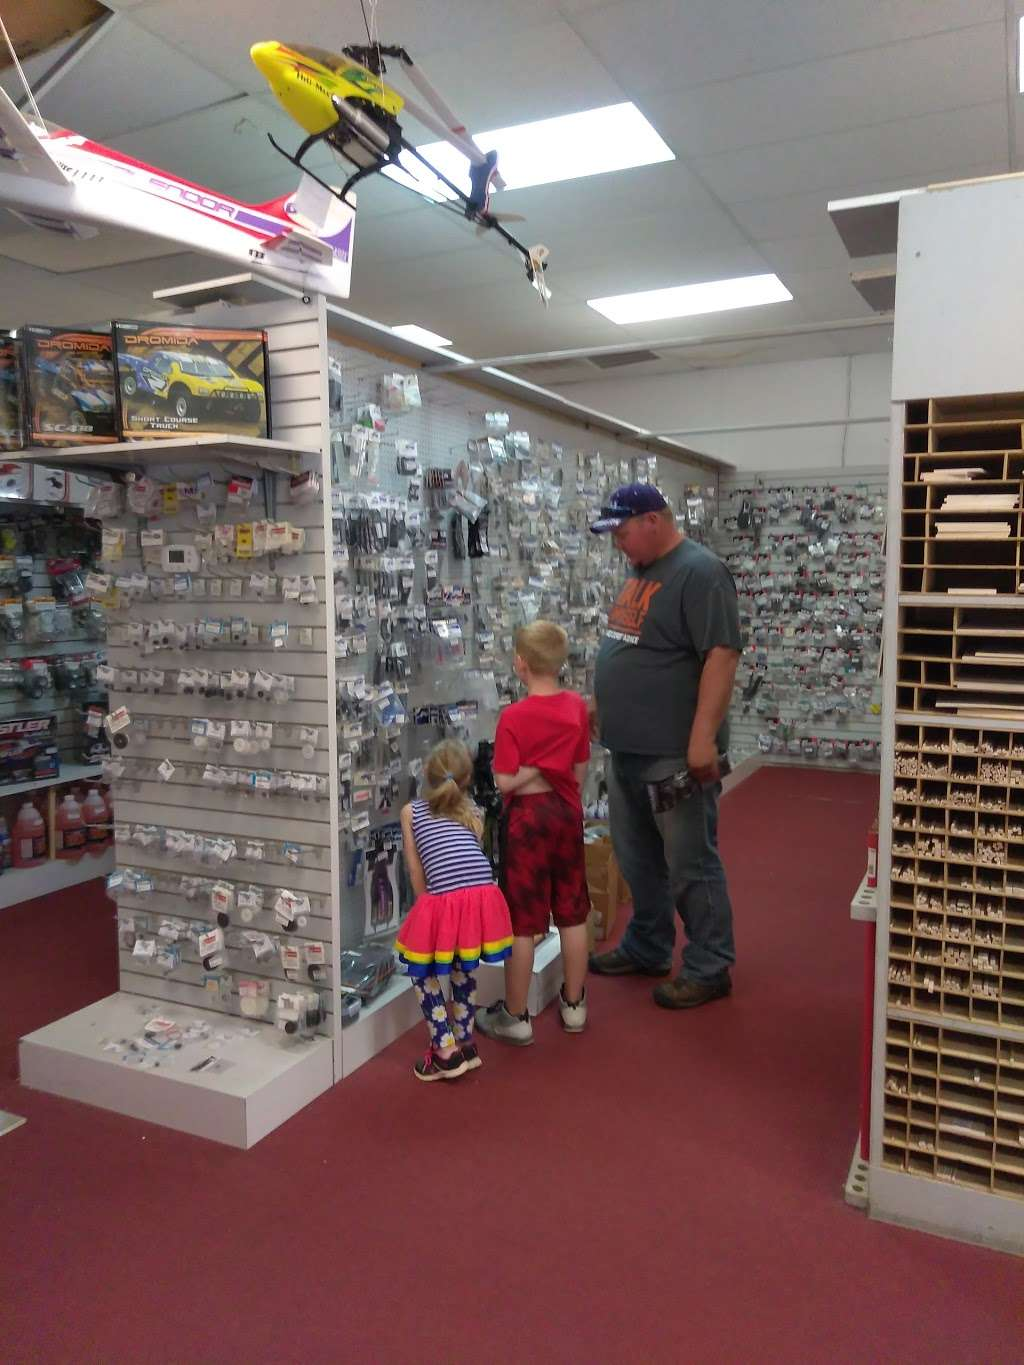 Hobby Stop Inc. - store  | Photo 6 of 10 | Address: 939 S Anderson Rd, Rock Hill, SC 29730, USA | Phone: (803) 327-4121